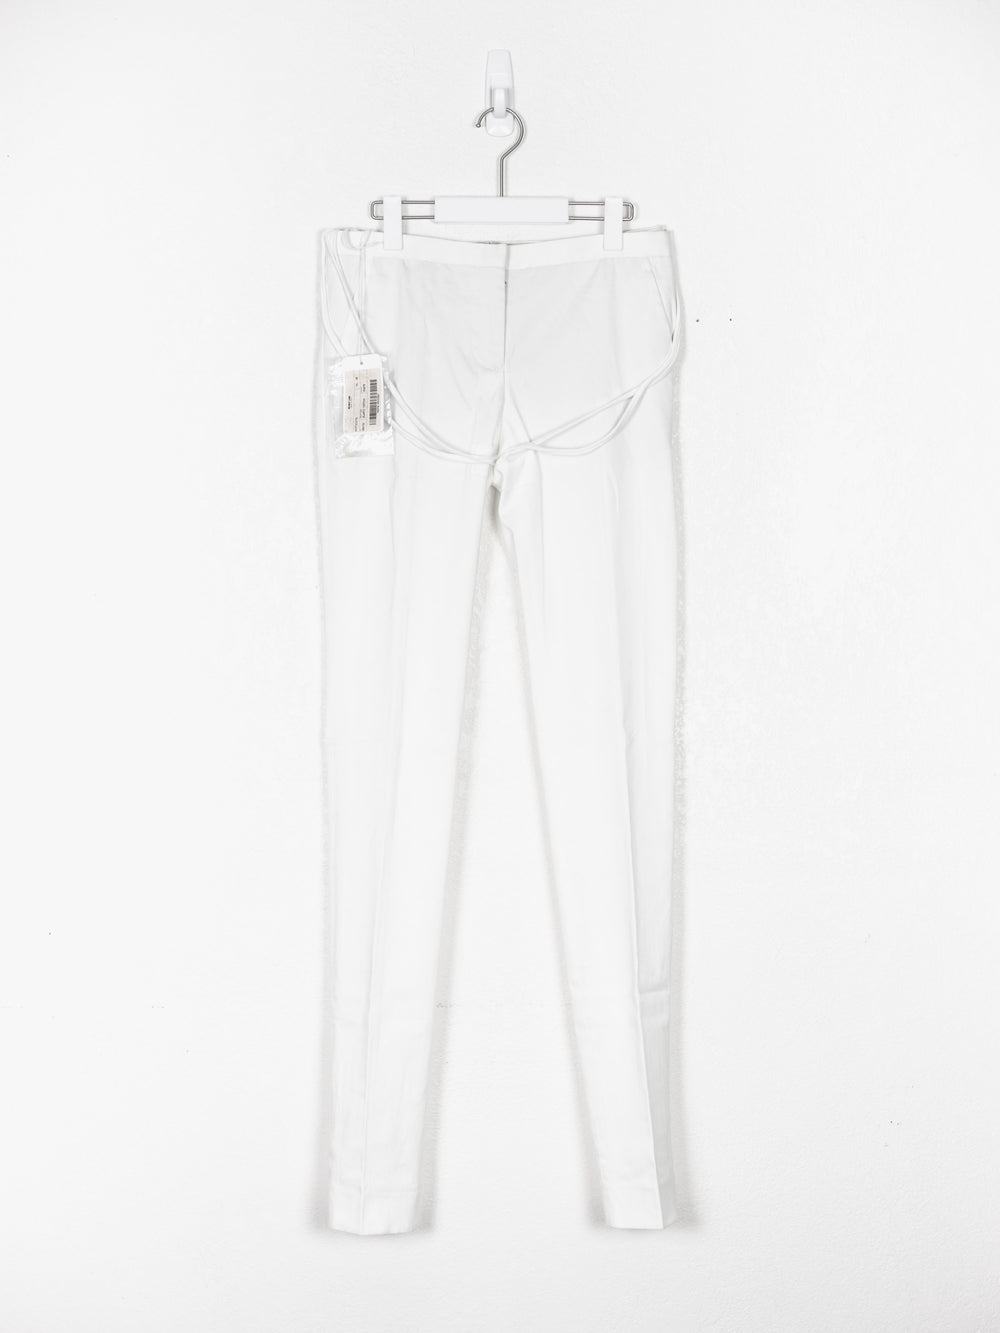 Helmut Lang SS04 Dragonfly Raw Strap Trousers